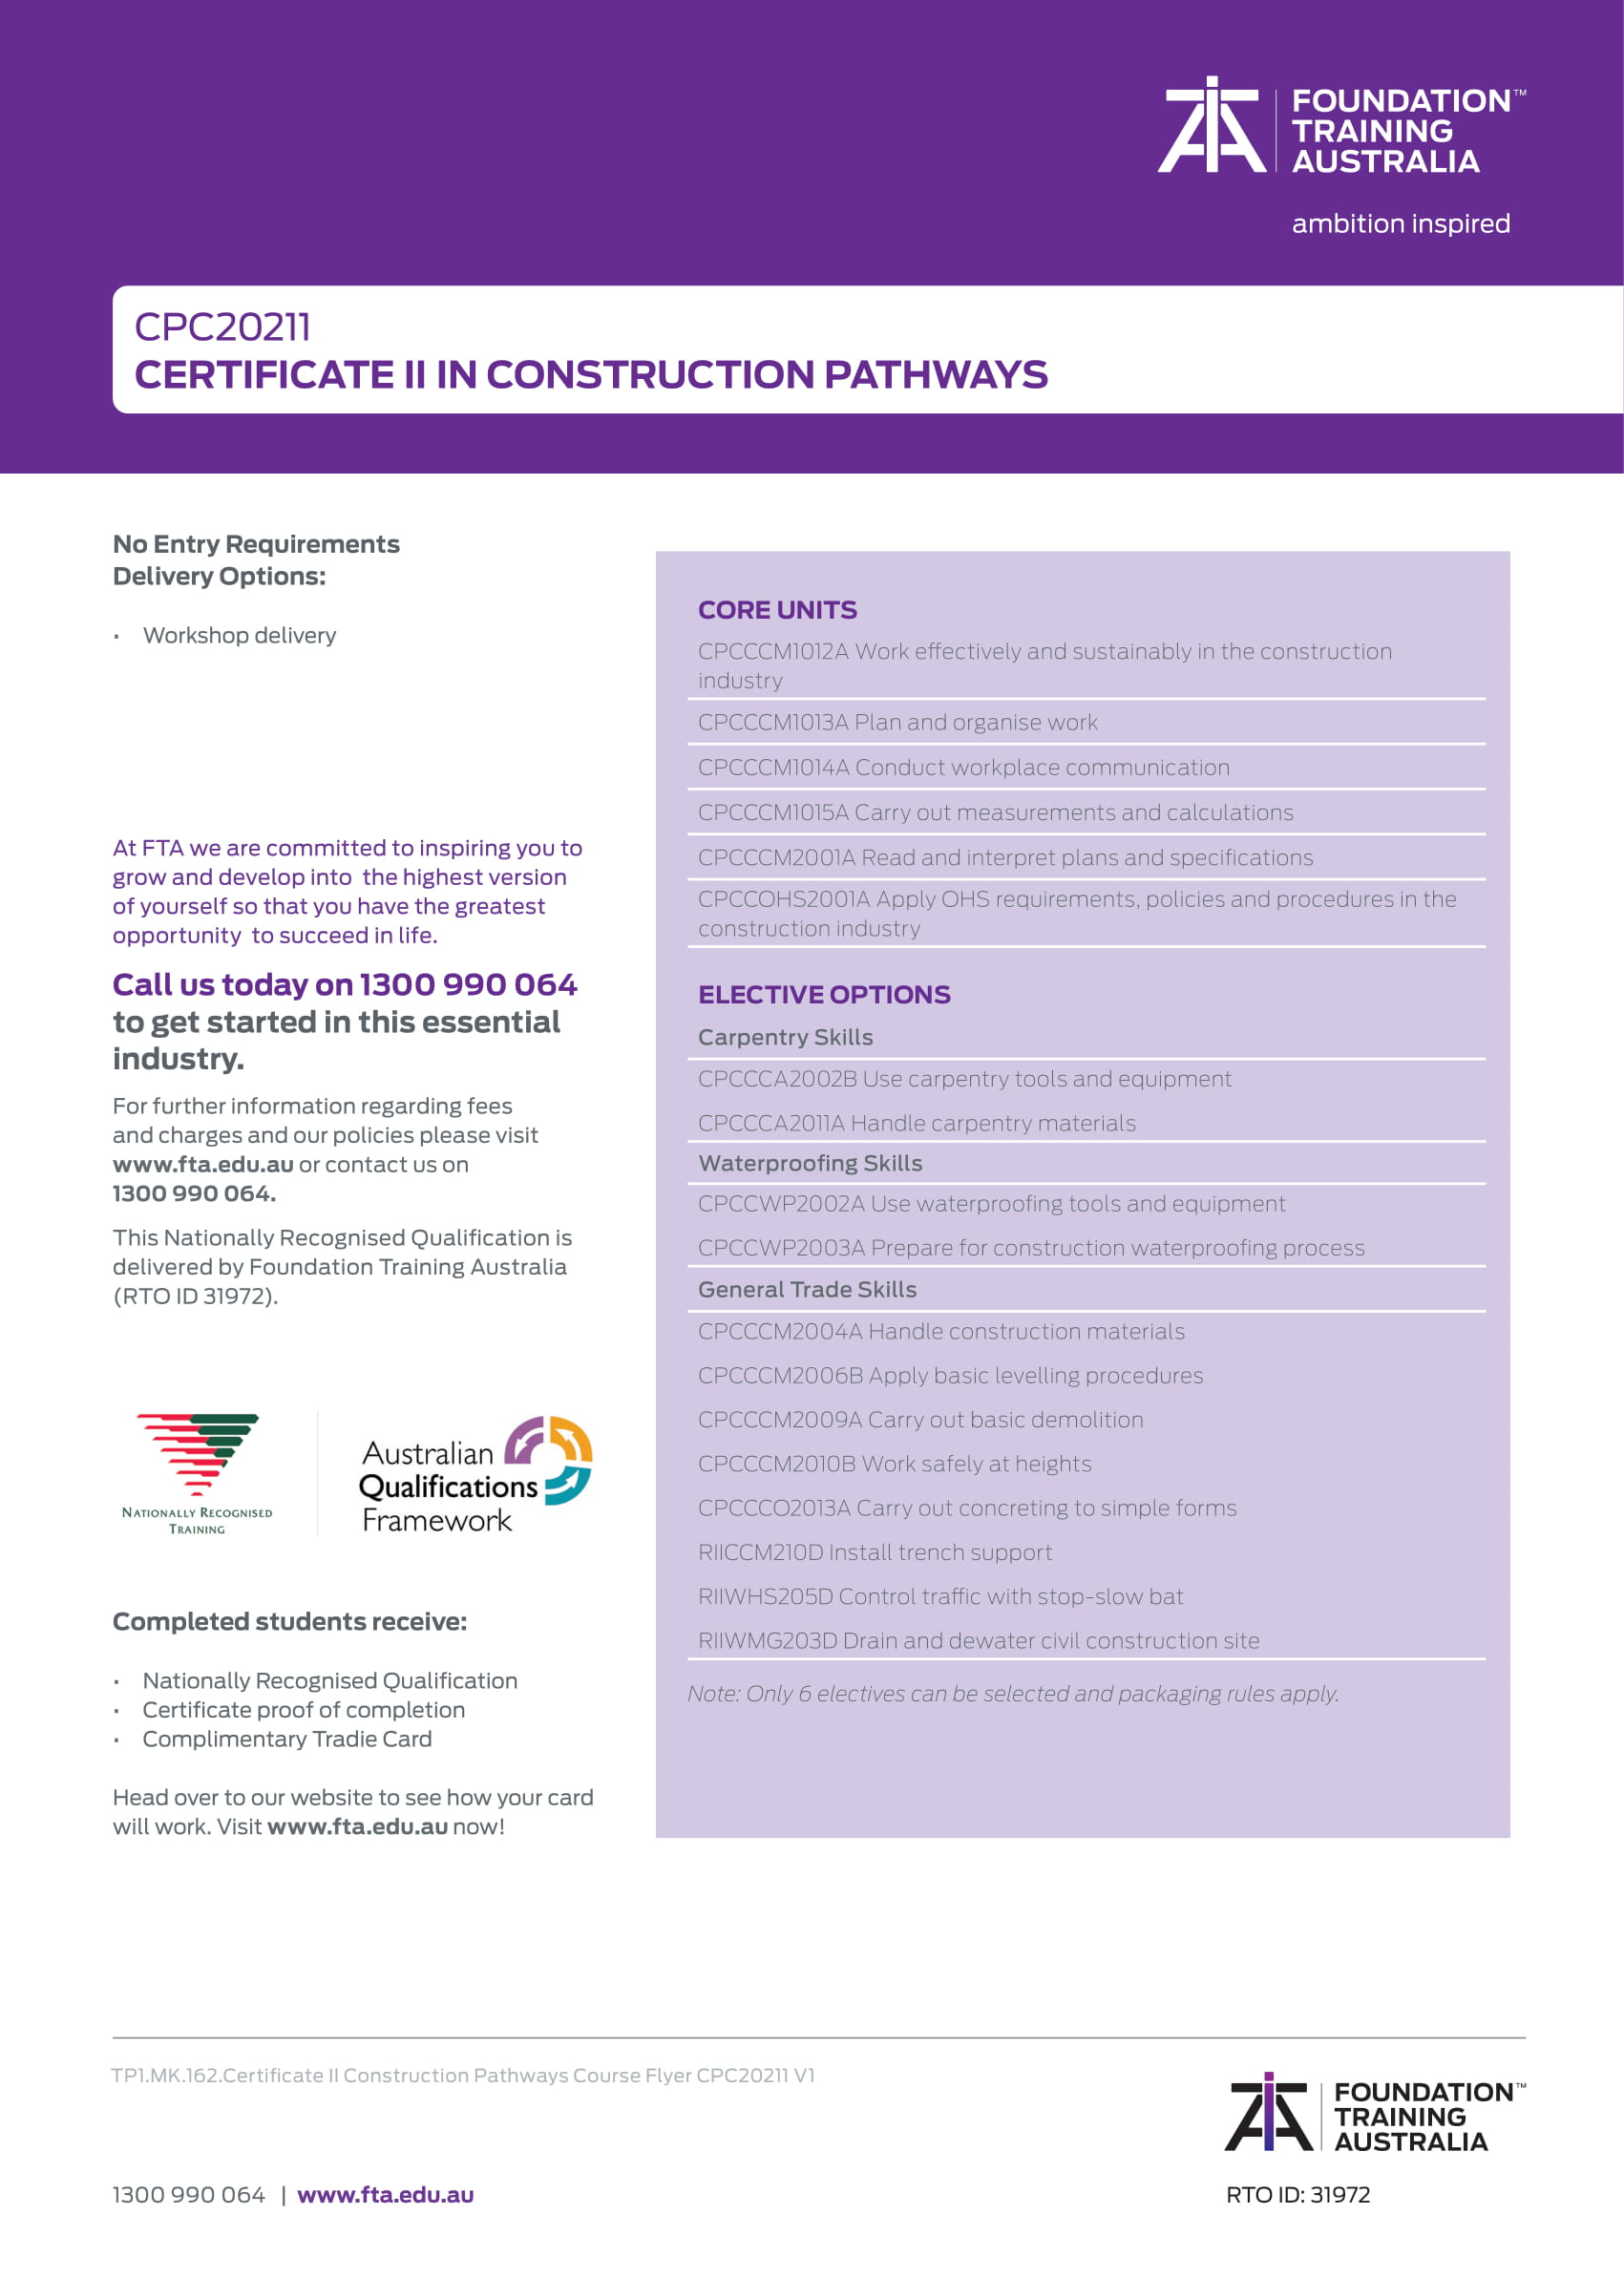 https://www.fta.edu.au/wp-content/uploads/2020/06/TP1.MK_.162.-Certificate-II-Construction-Pathways-Course-Flyer-CPC20211-V1-2.jpg